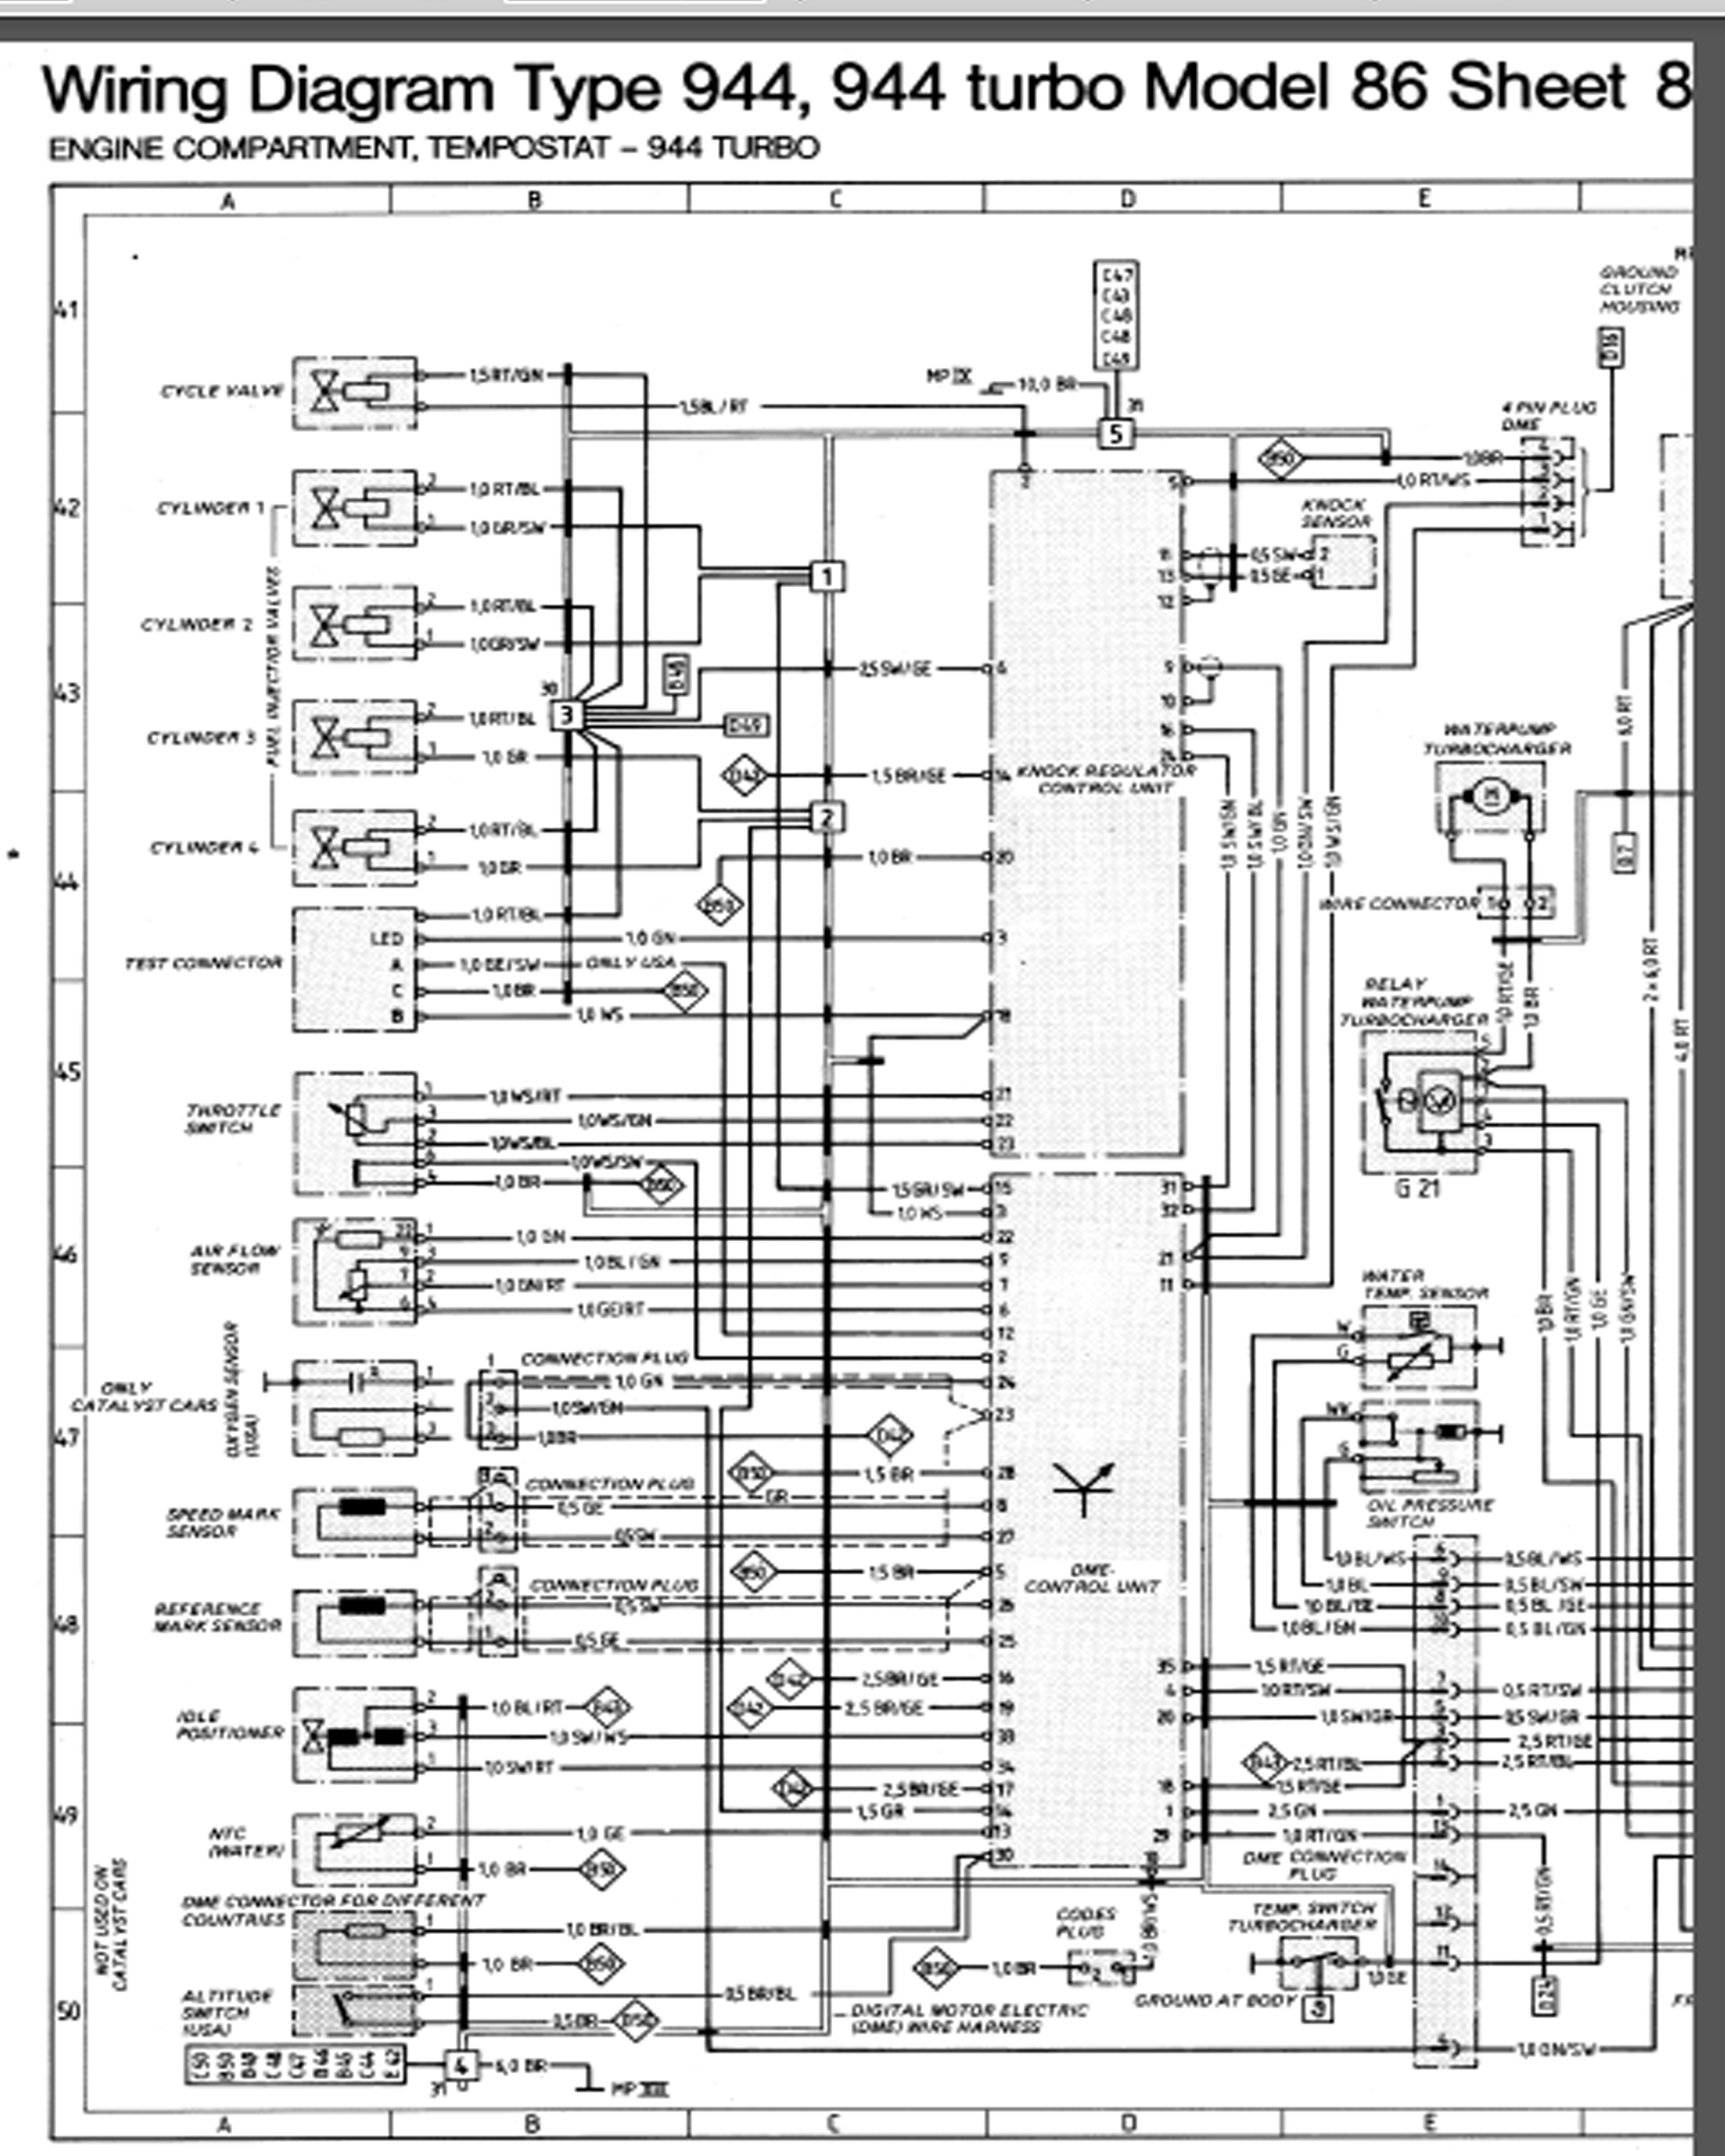 2012 01 18_173958_96_944_turbo_wiring_page_1 wiring diagram for porsche 944 dome light readingrat net 1983 porsche 944 wiring diagram at honlapkeszites.co